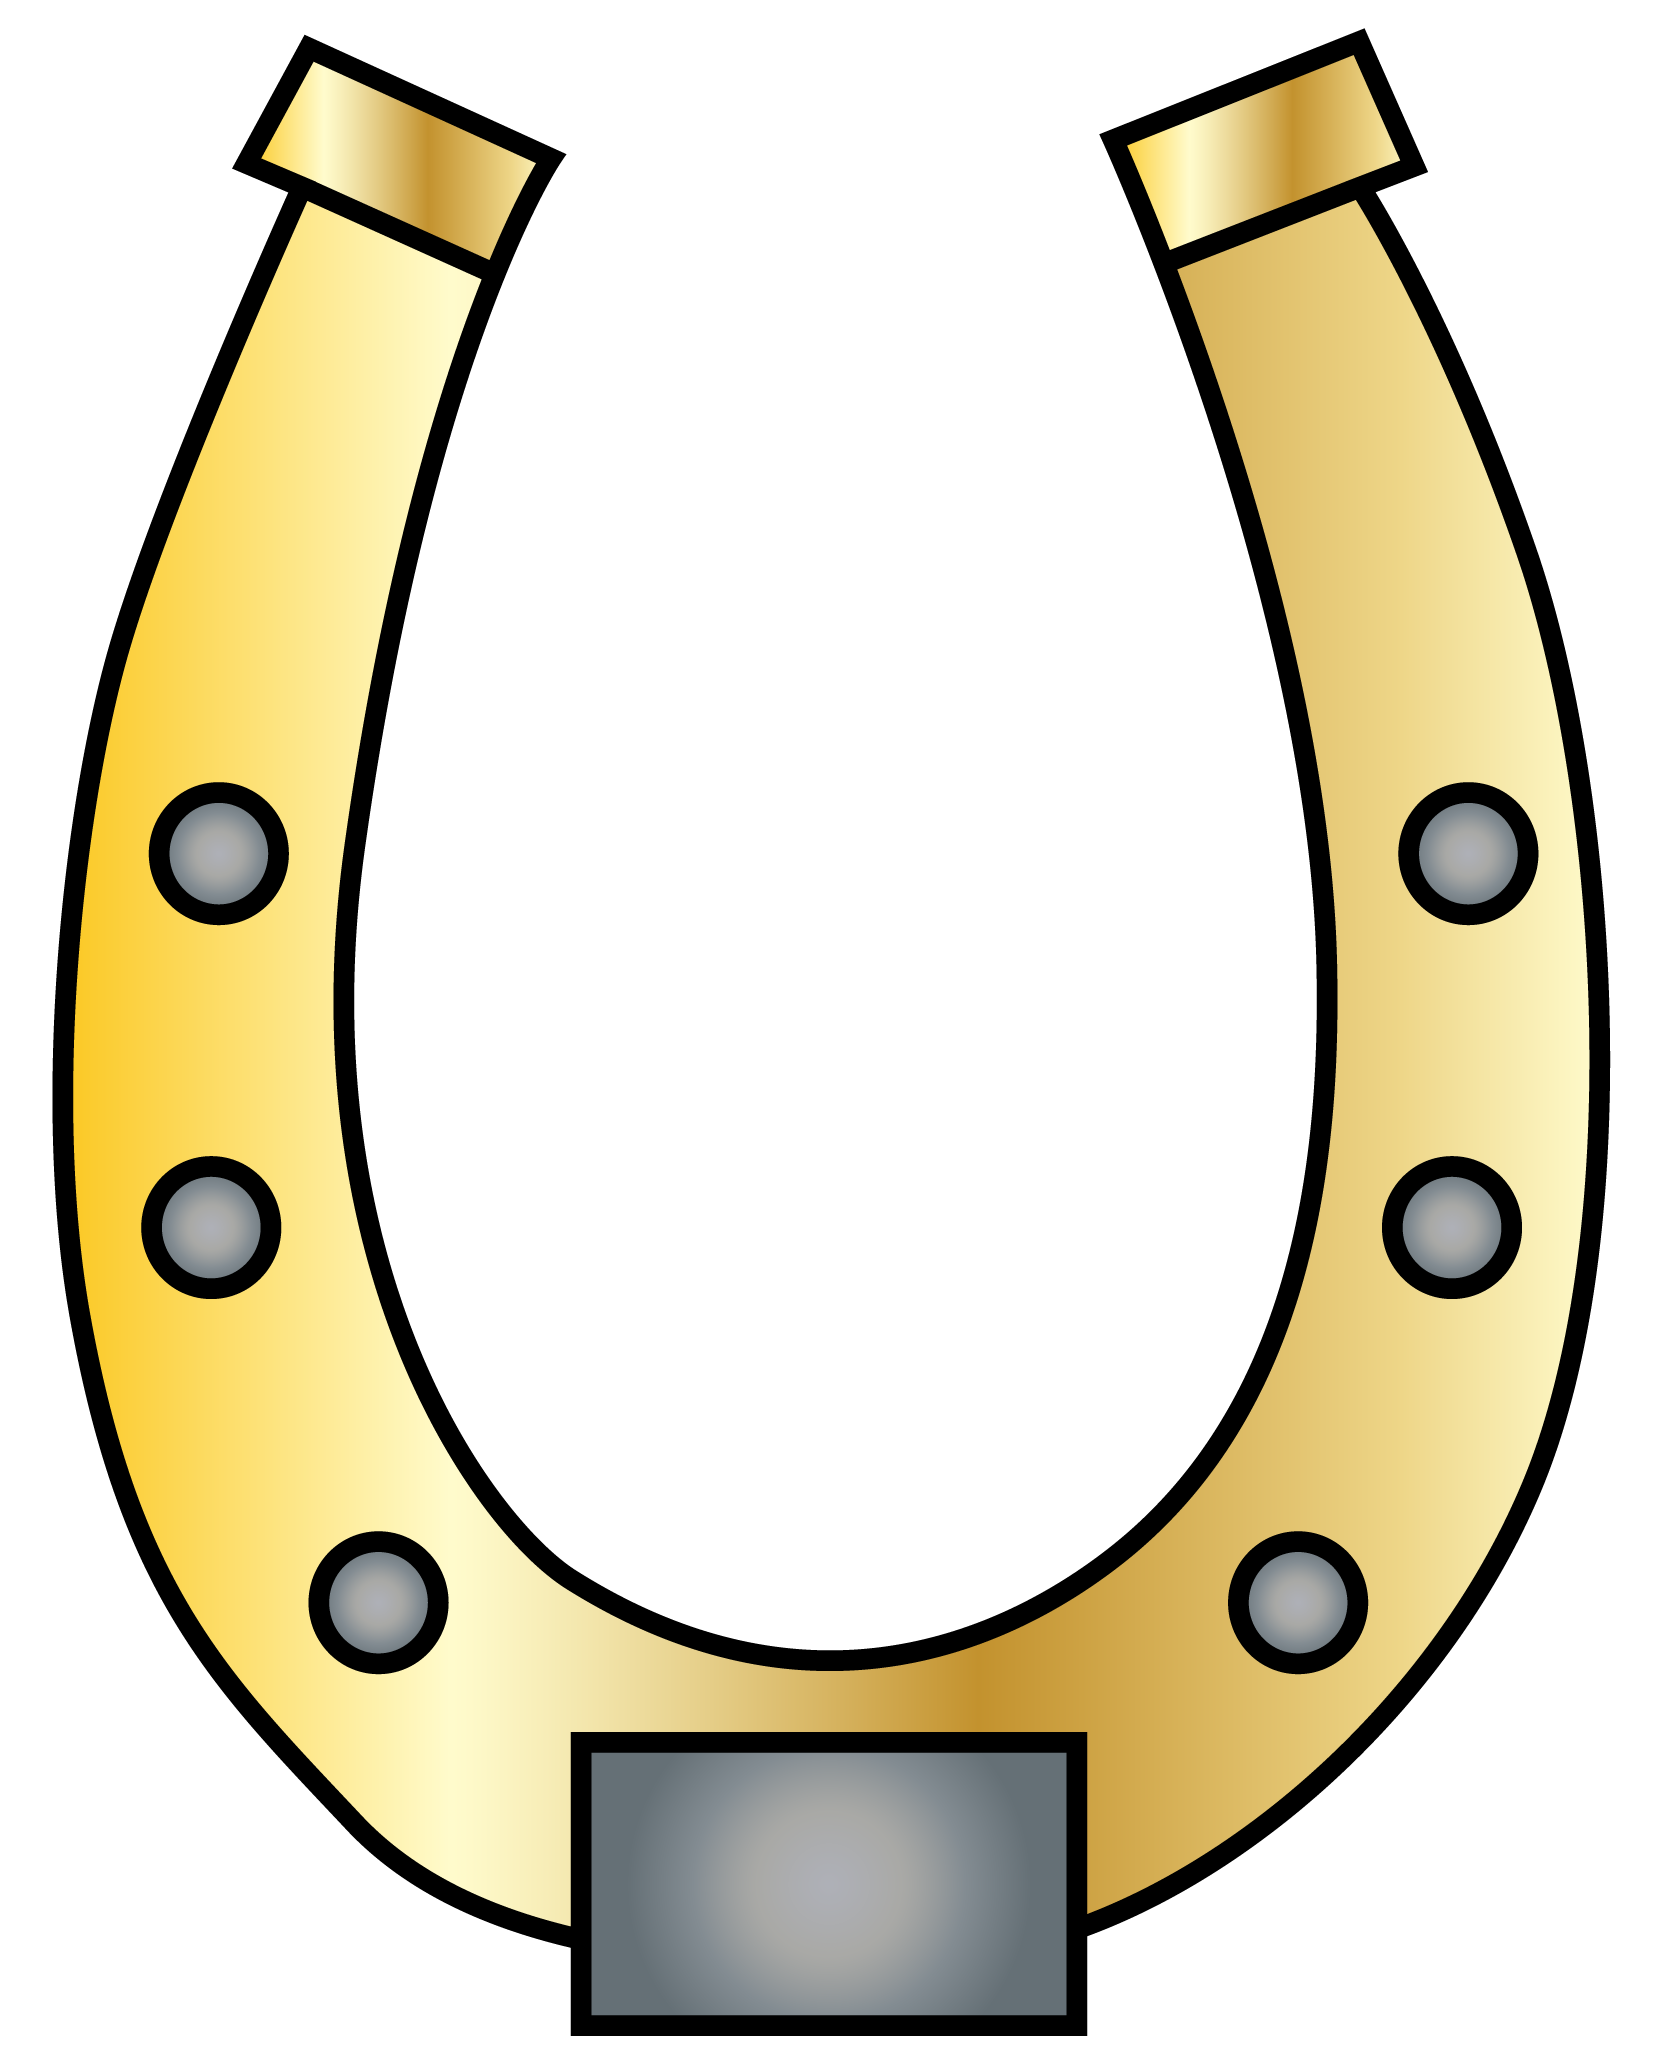 Horseshoe clipart horseshoe tournament. Free cliparts download clip